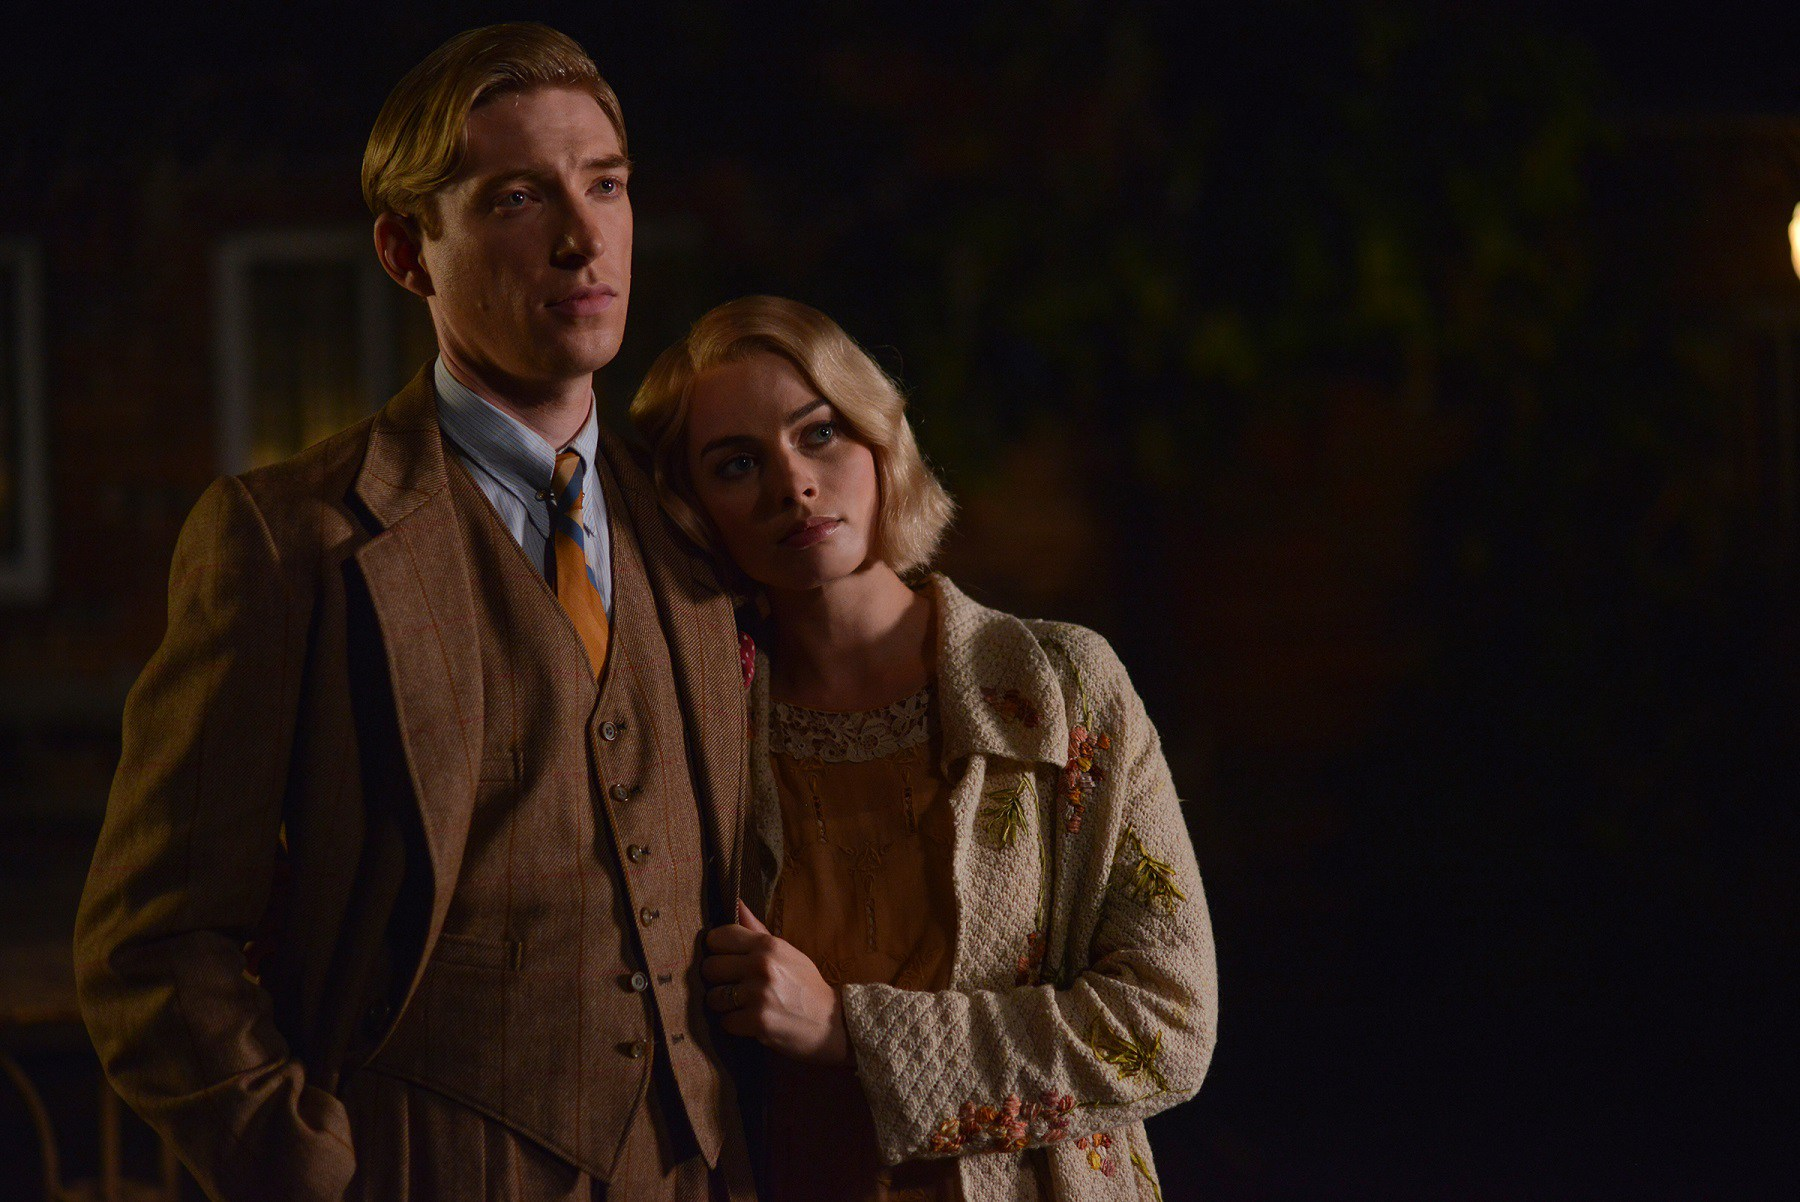 Domhnall-Gleeson-as-Alan-Milne-and-Margot-Robbie-as-Daphne-Milne-in-the-film-UNTITLED-A.A.-MILNE.-Photo-by-David-Appleby.-©-2017-Fox-Searchlight-Pictures2